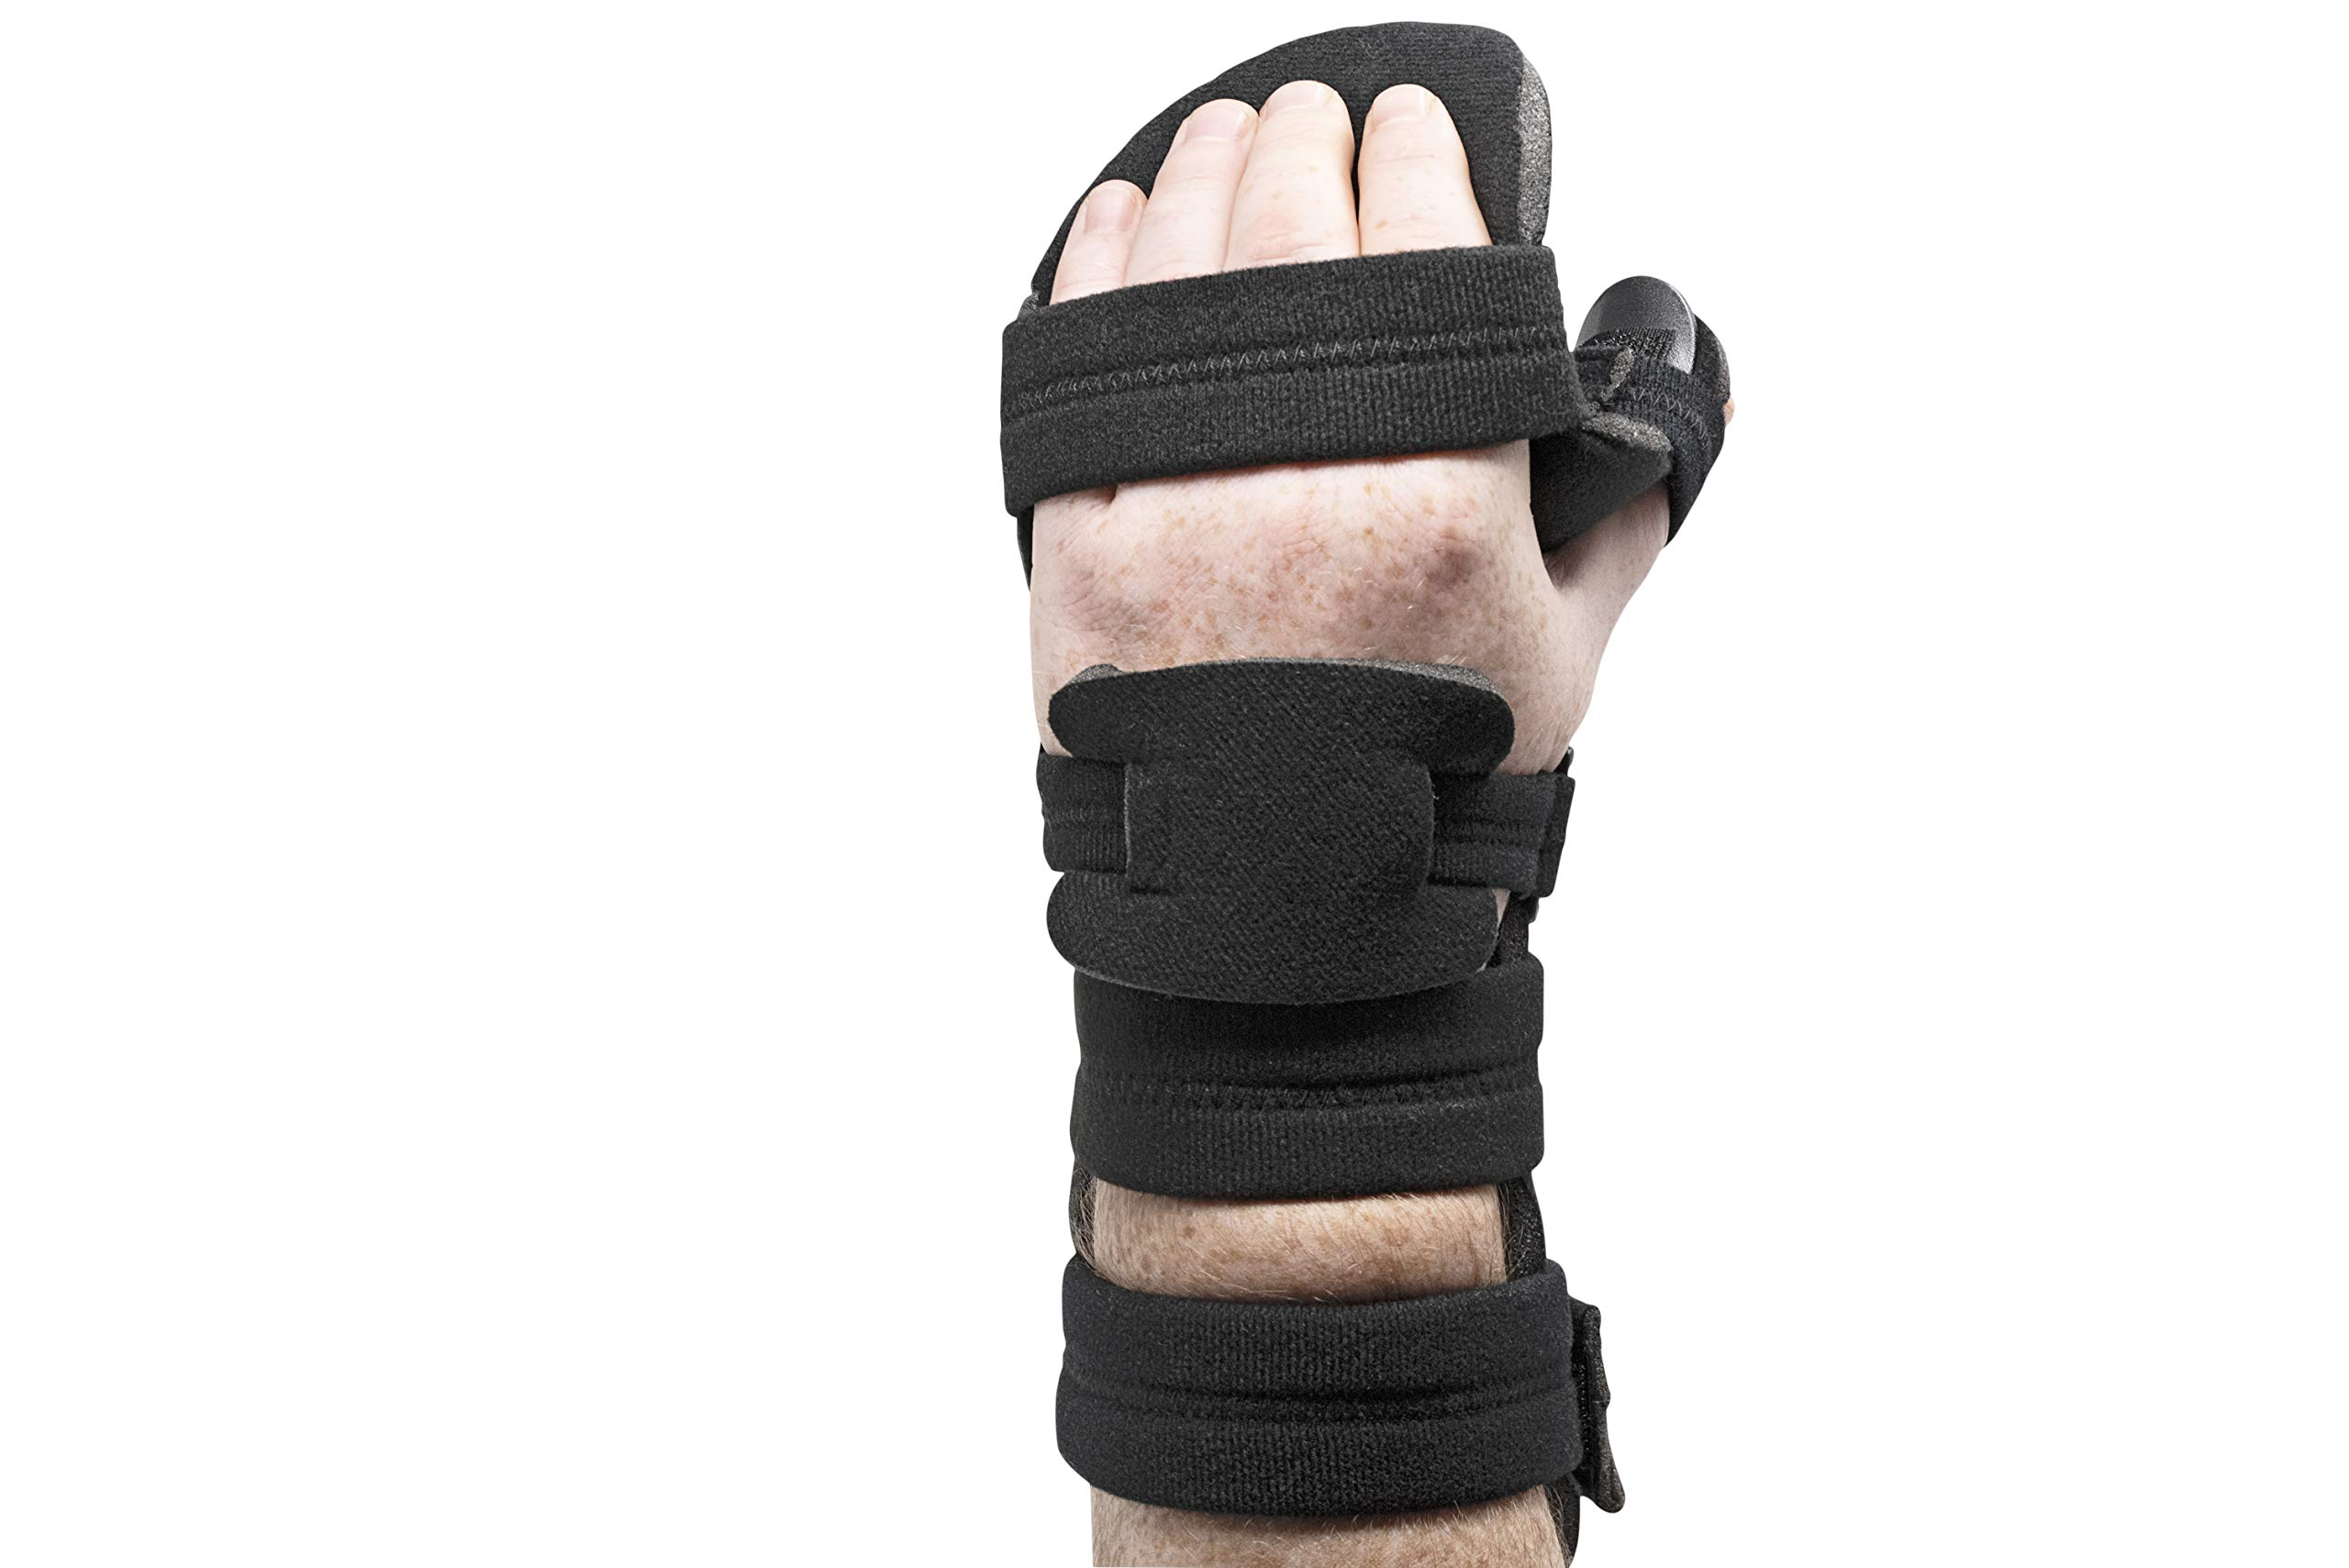 Stroke Hand Splint- Soft Resting Hand Splint for Flexion Contractures, Comfortably Stretch and Rest Hands for Long Term Ease with Functional Hand Splint, an American Heritage Industries(Left, Small) by American Heritage Industries (Image #2)